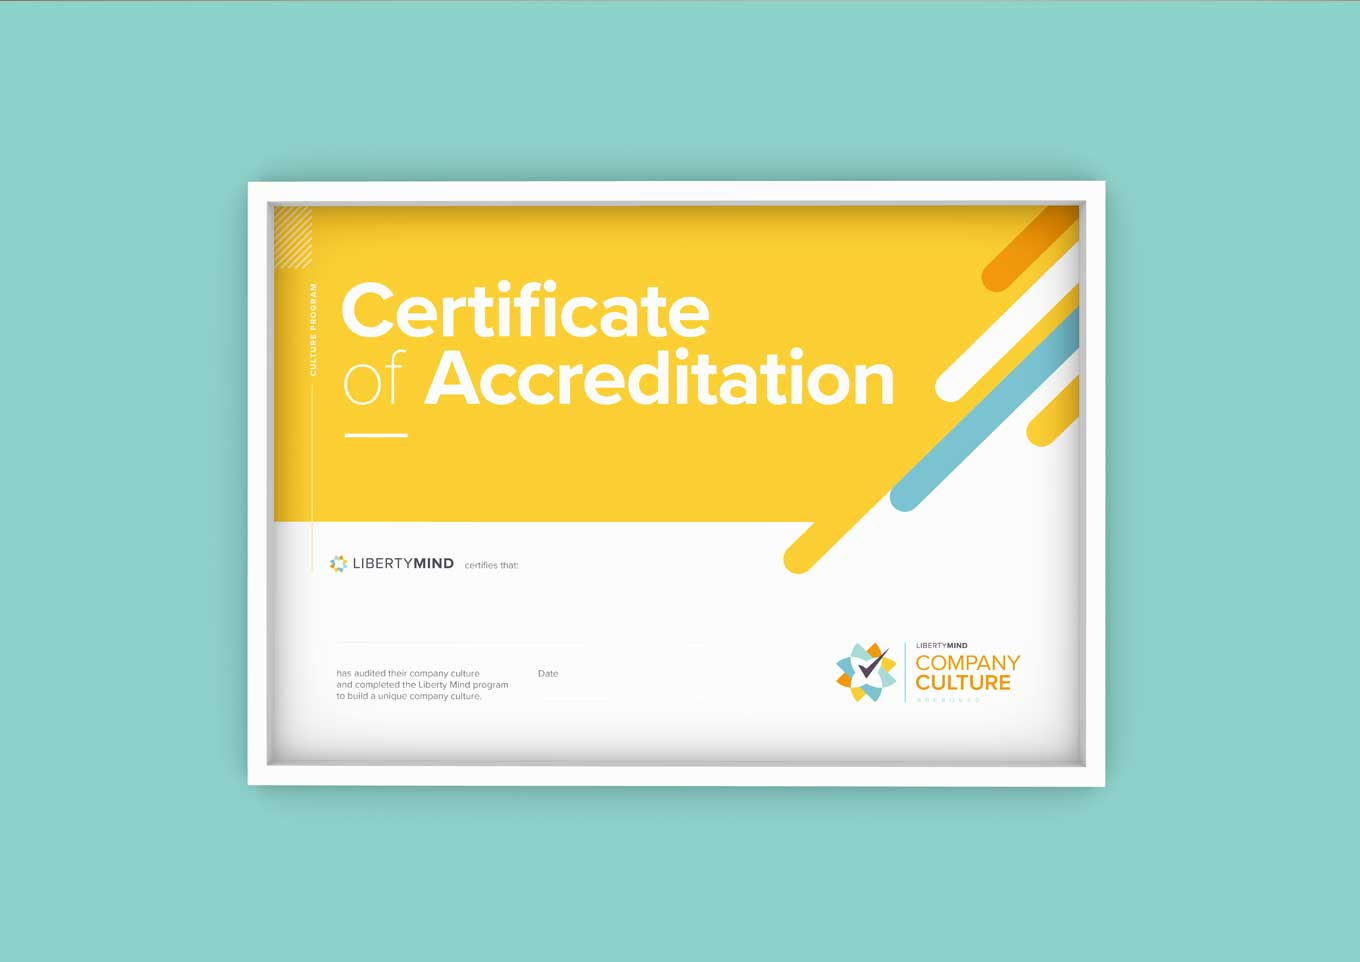 Image of the Liberty Mind Company Culture Accreditation certificate.